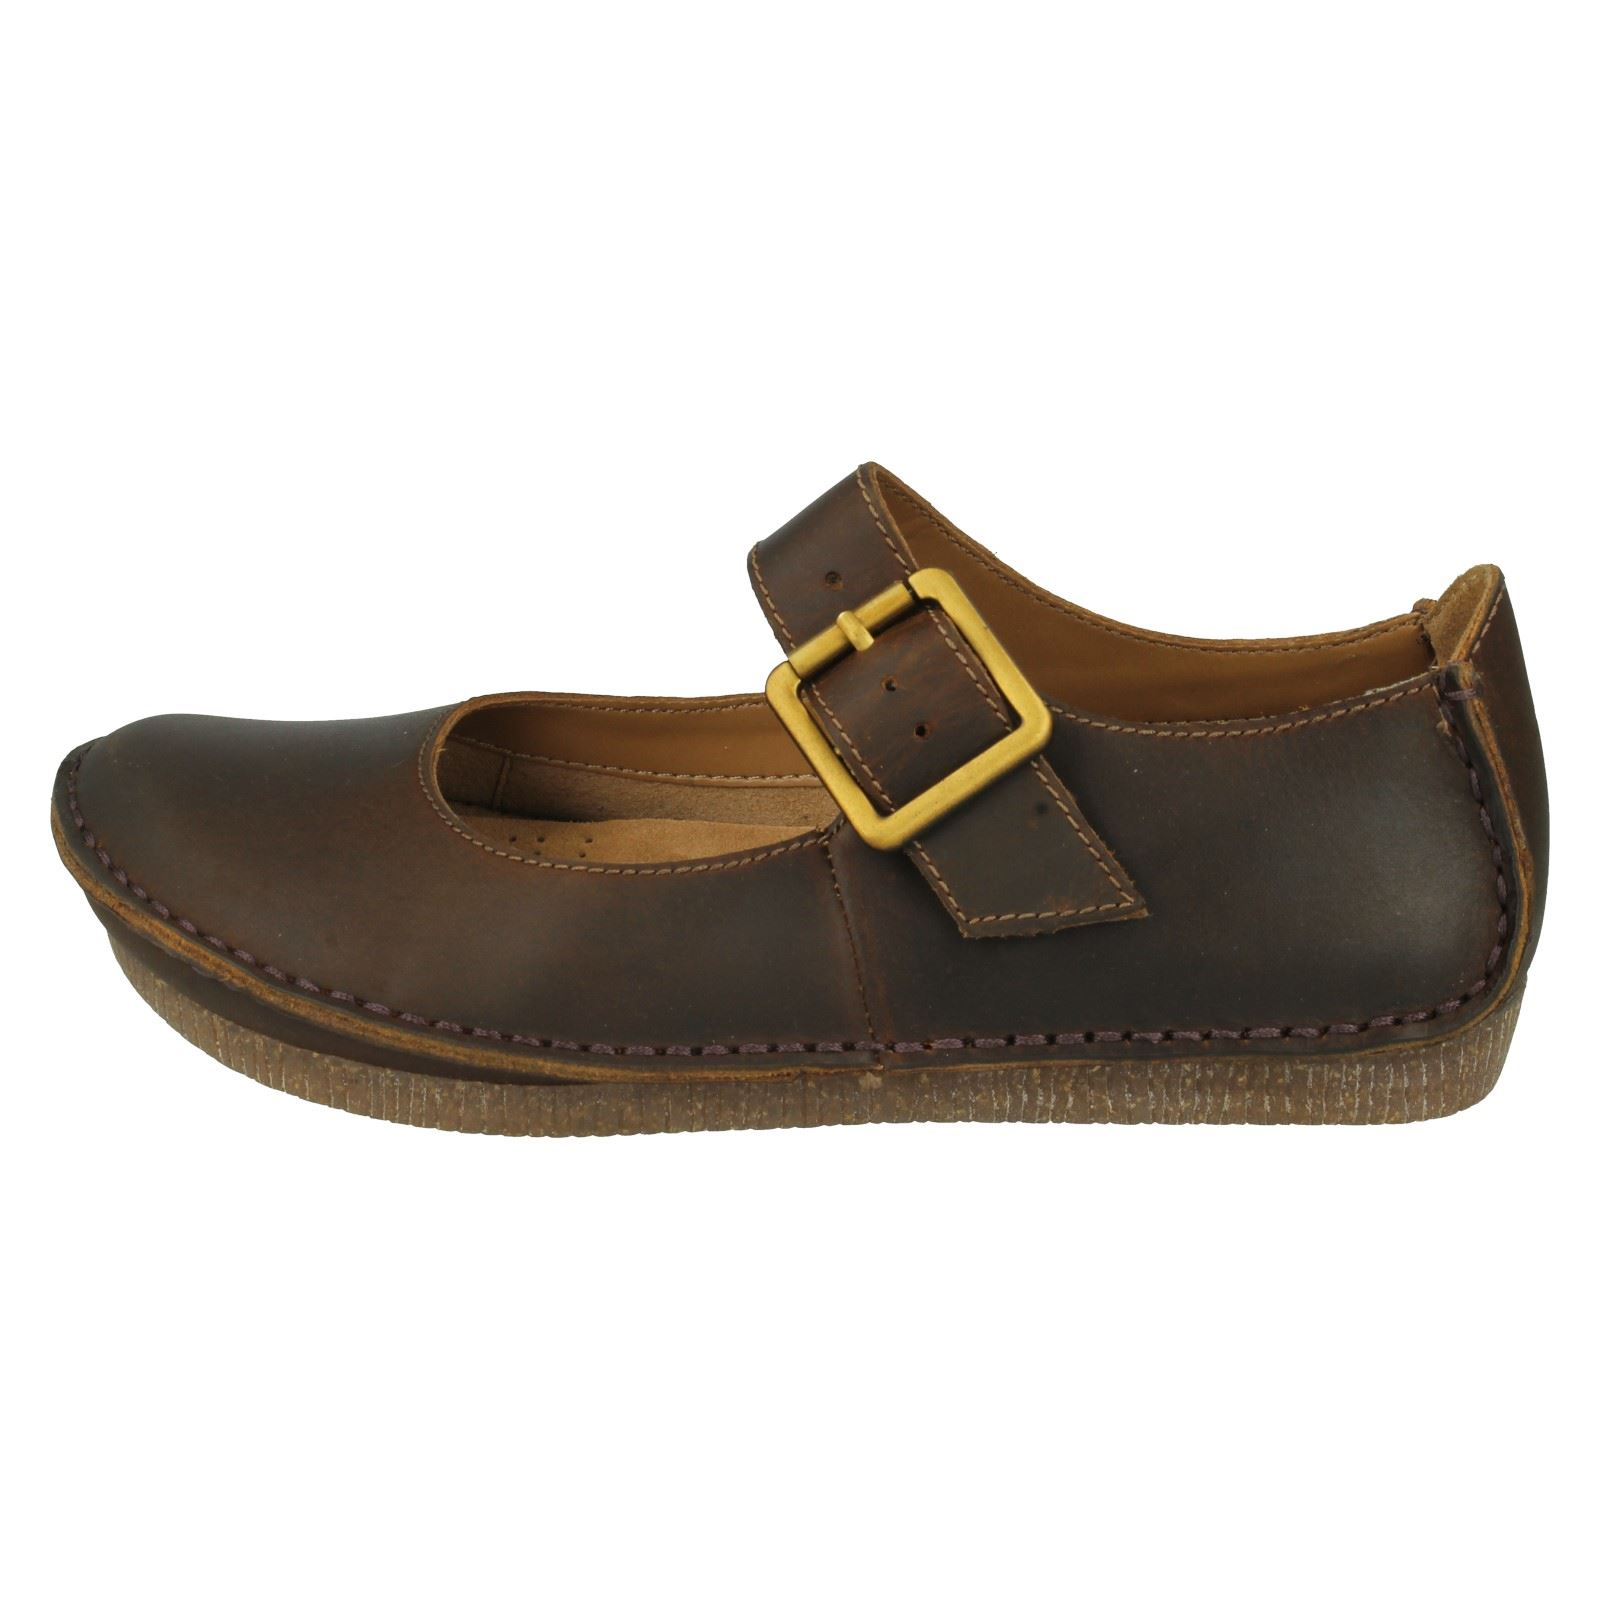 c57c566ba6db68 ... mesdames mesdames mesdames clarks mary jane flats style janey juin |  Attrayant Et Durable a8d184 ...